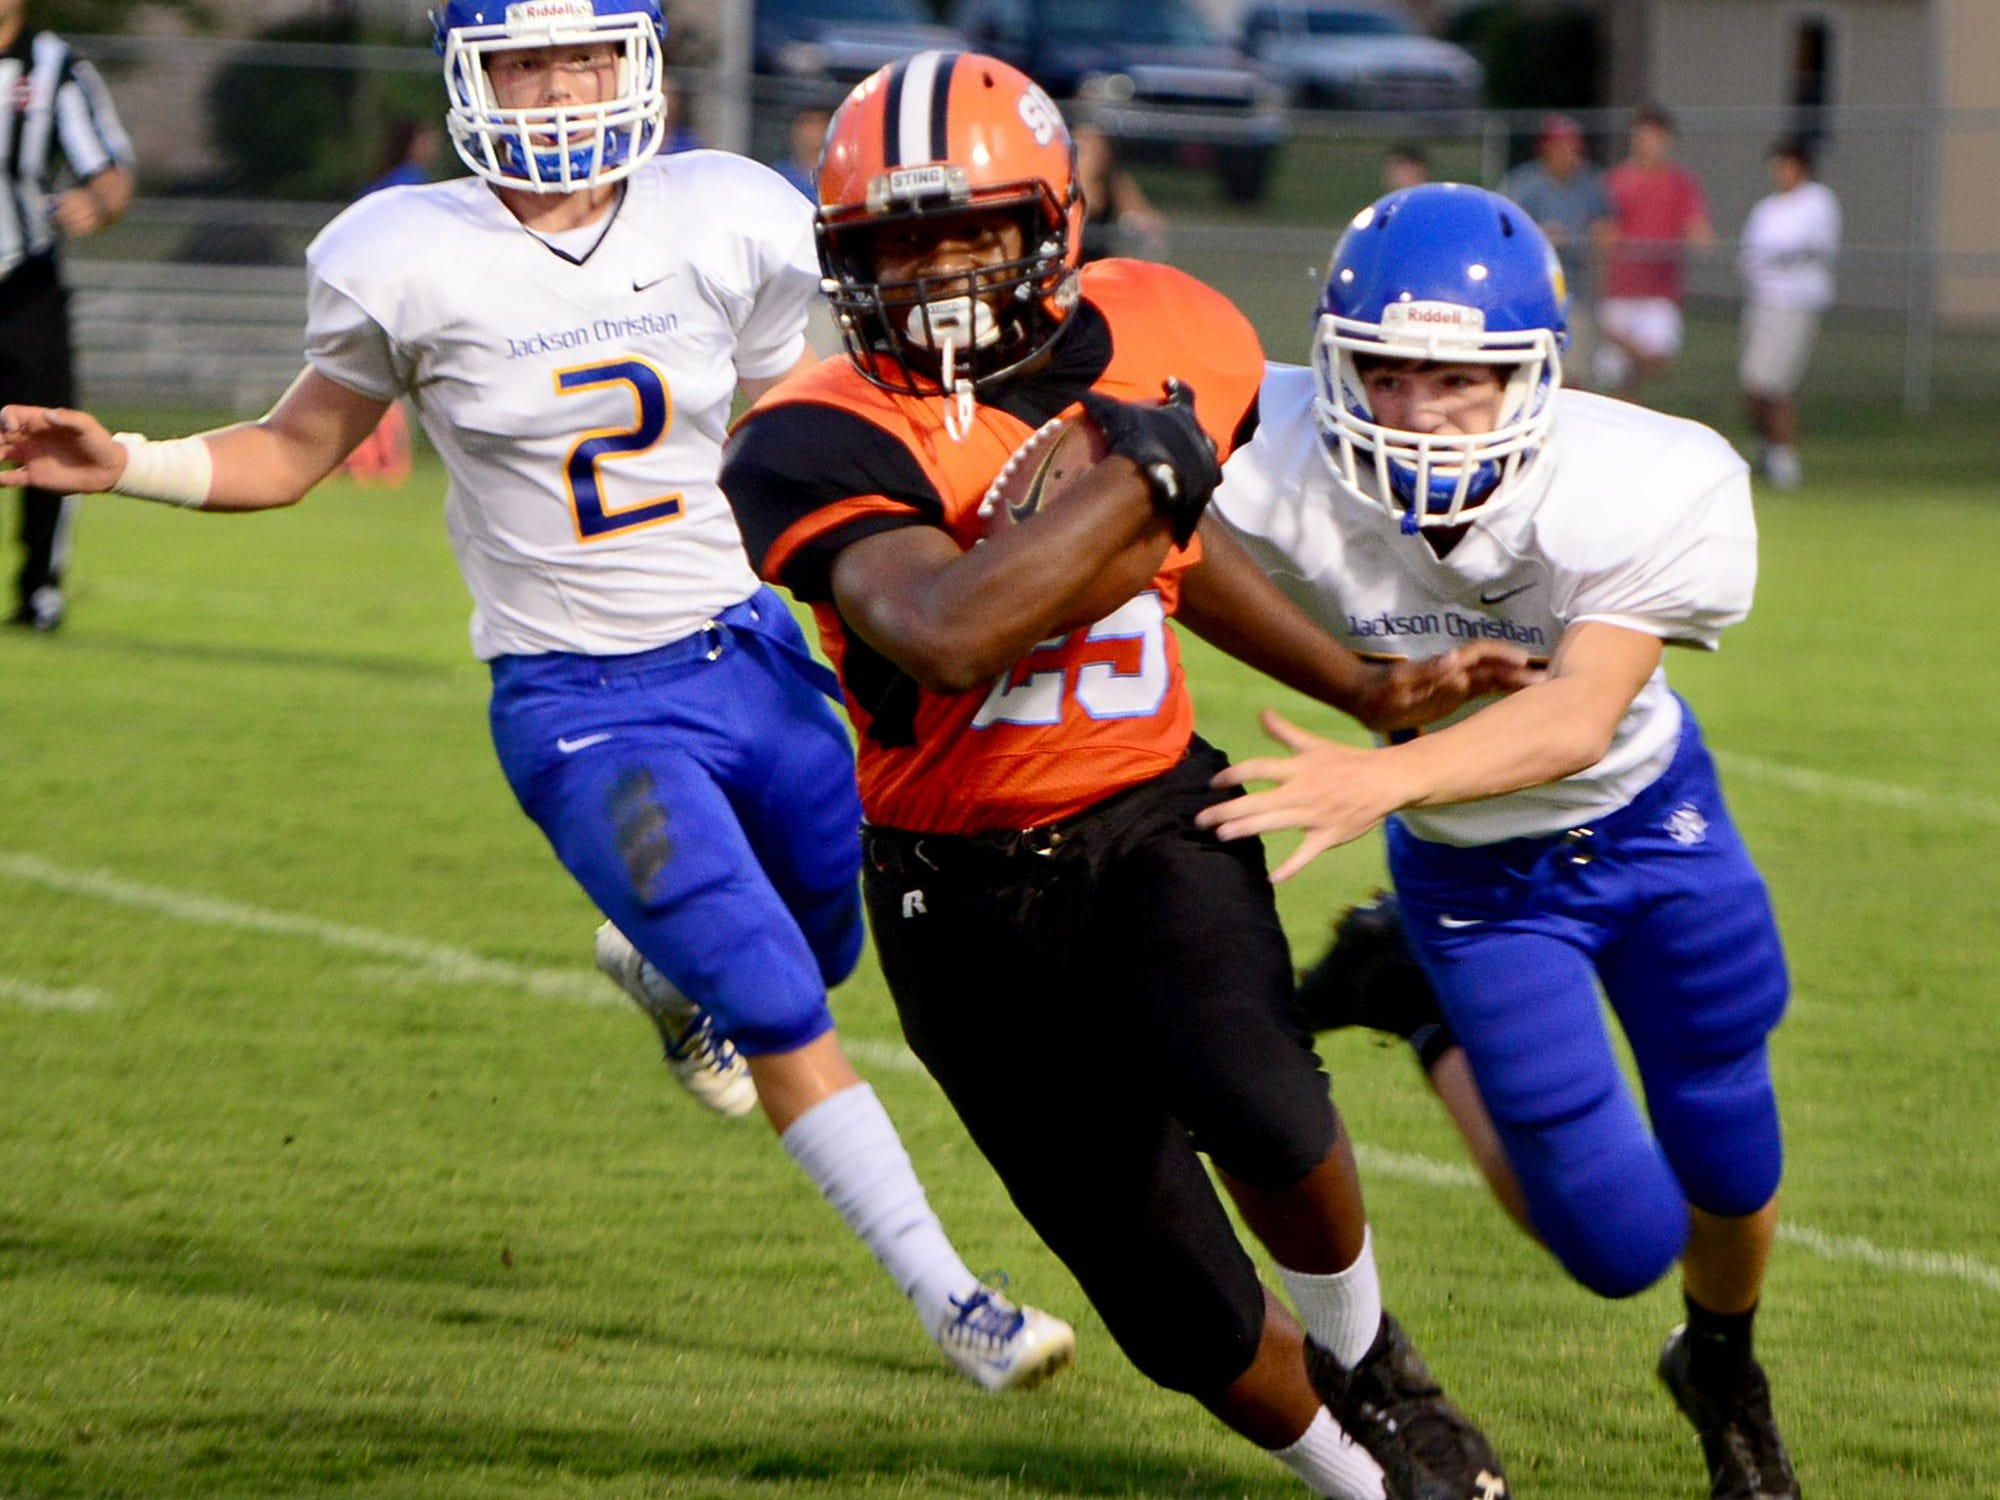 South Gibson County's CJ Sharp outruns Jackson Christians' Collin Cantrell and Hayden Love during their game Friday.